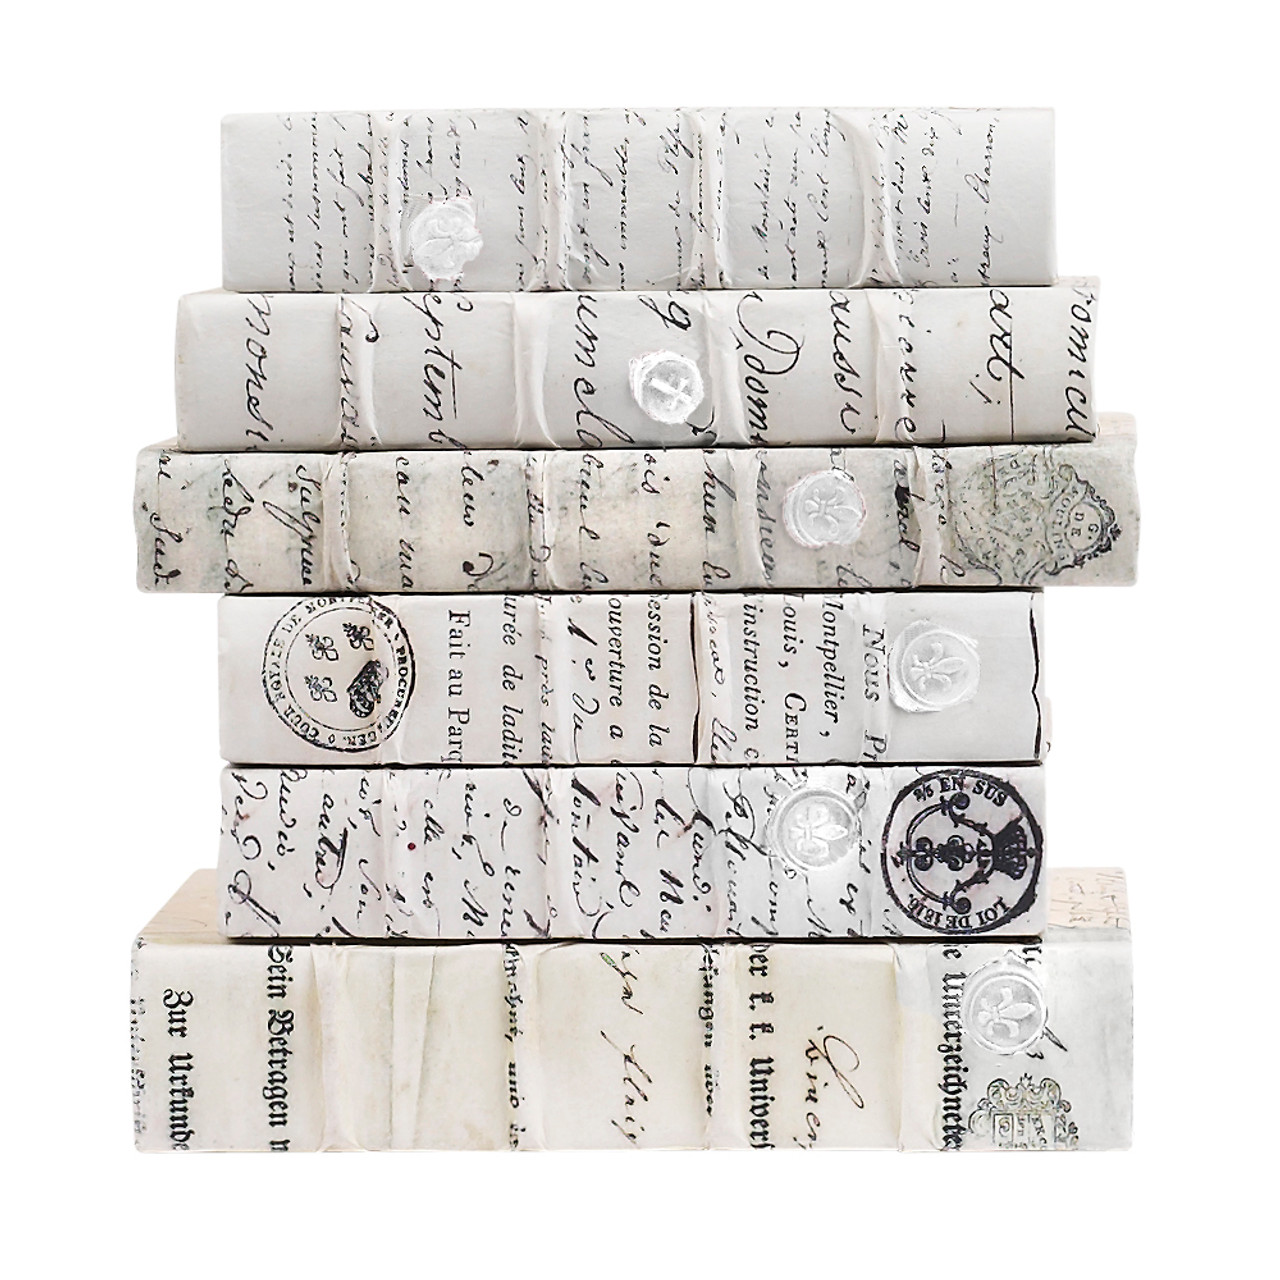 Antique Script w/ White Wax Seal-LG -priced by the book